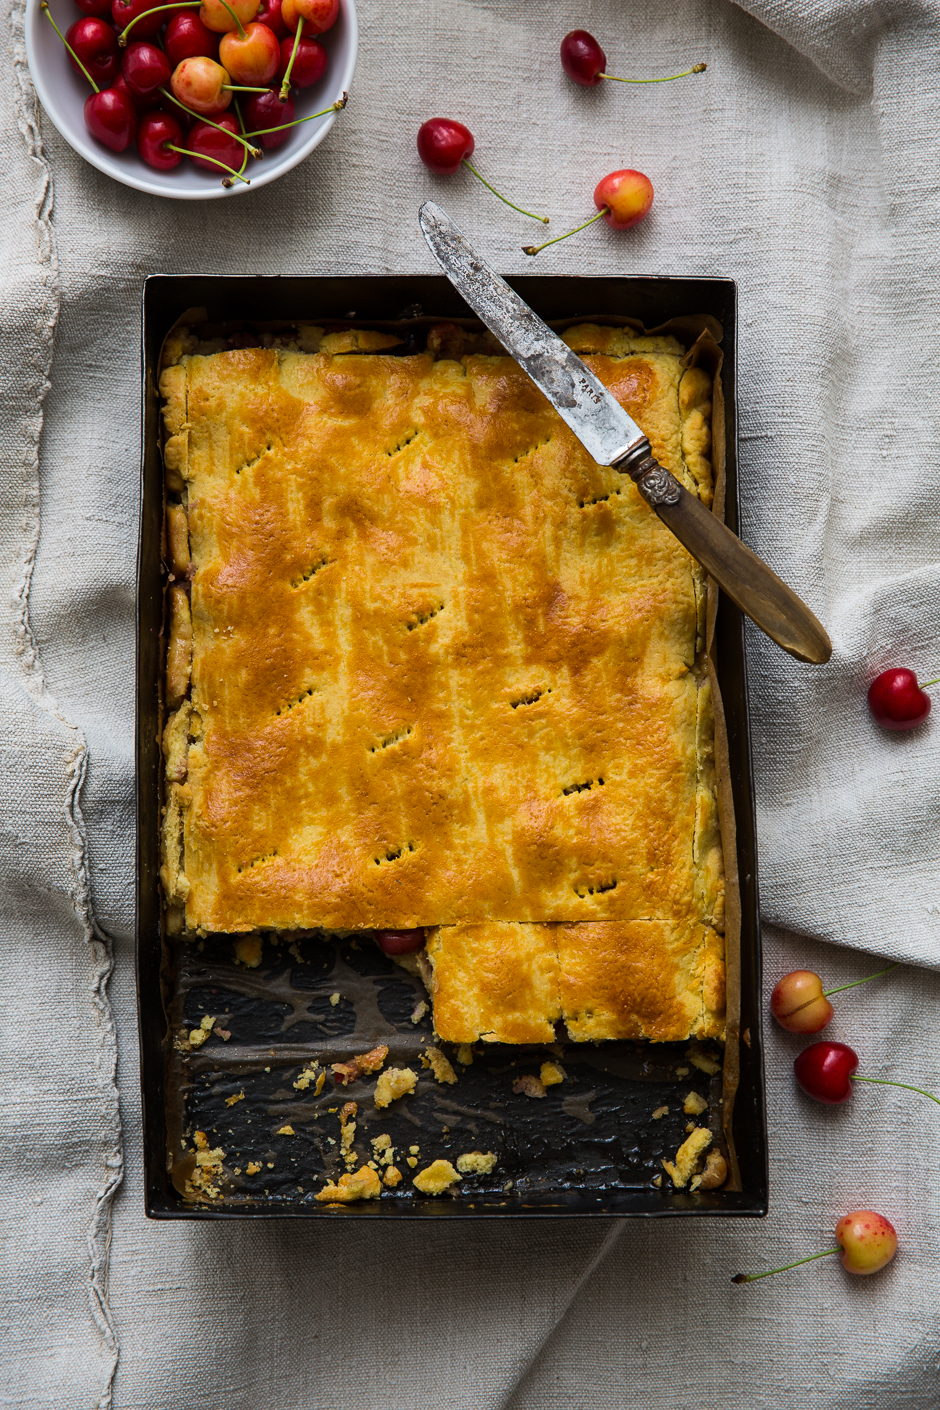 cherry pie from the Taste of Memories Hungarian country kitchen www.tasteofmemories.com